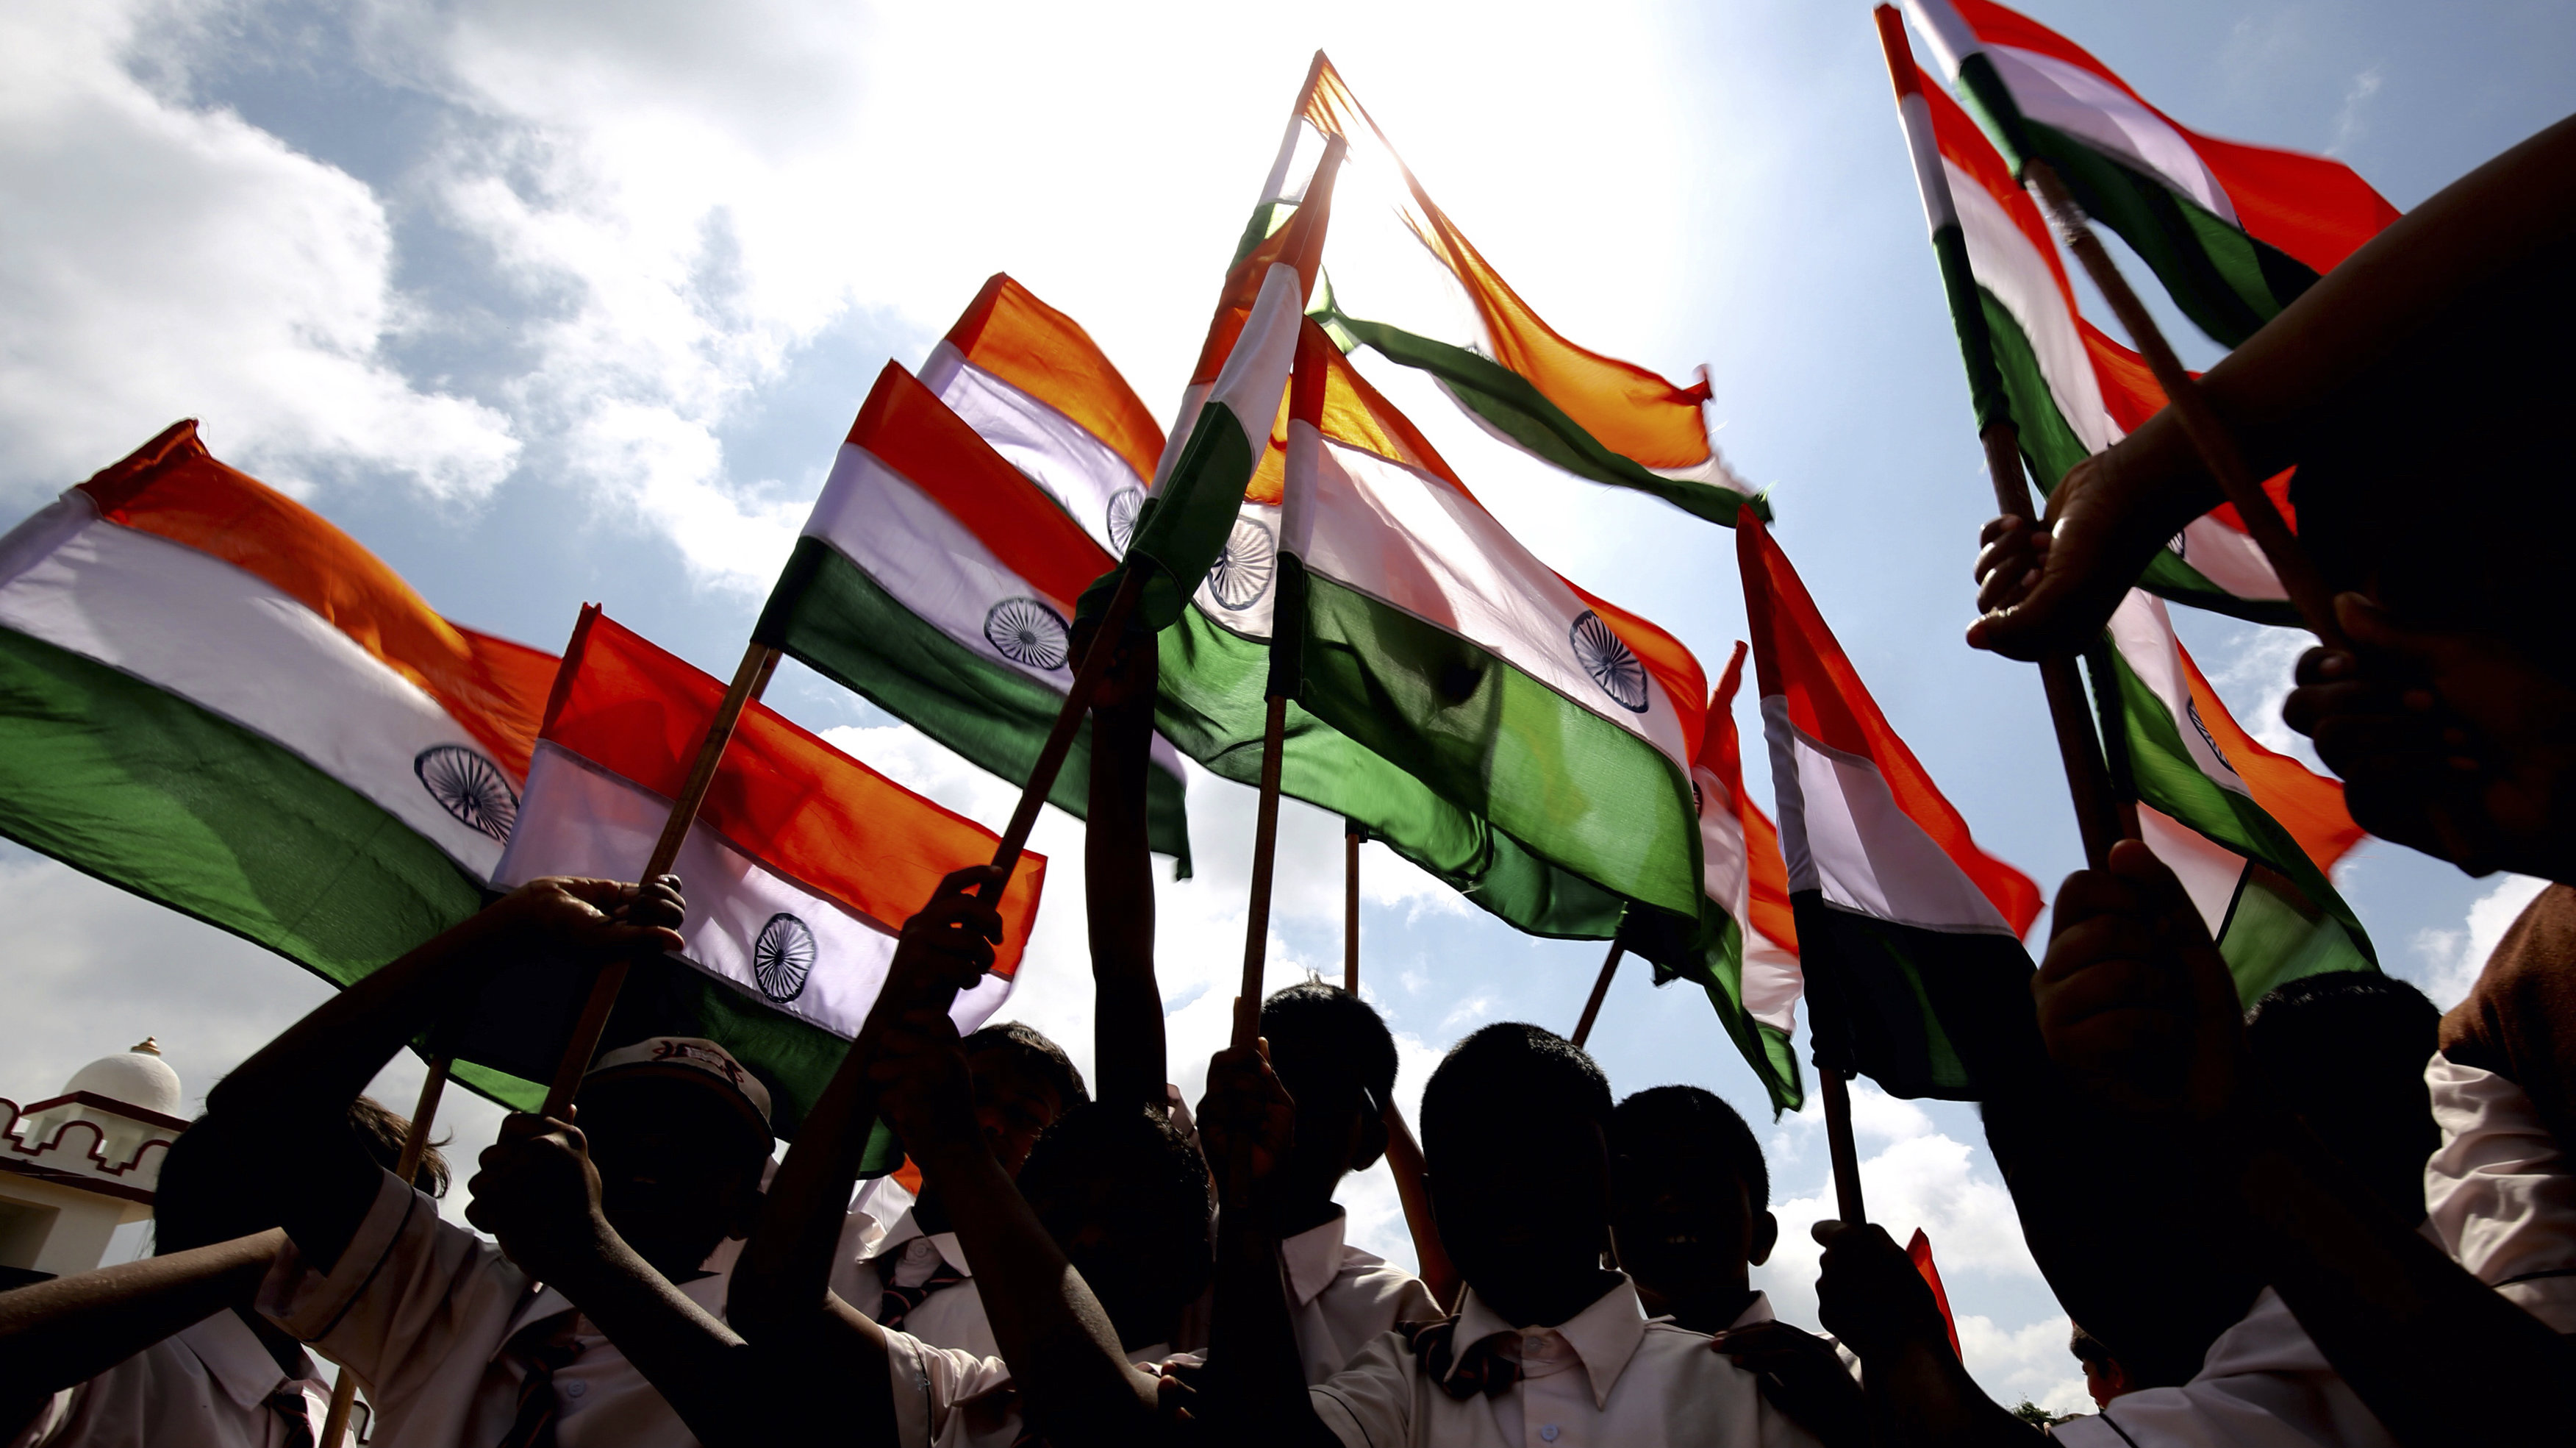 ndian school children hold the Indian national flag during rehearsal for India's Independence Day parade and celebrations in Bangalore, India, 13 August 2016. India's 70th Independence Day will be celebrated on 15 August, to commemorate its independence from British rule and its birth as a sovereign nation on that day in 1947.